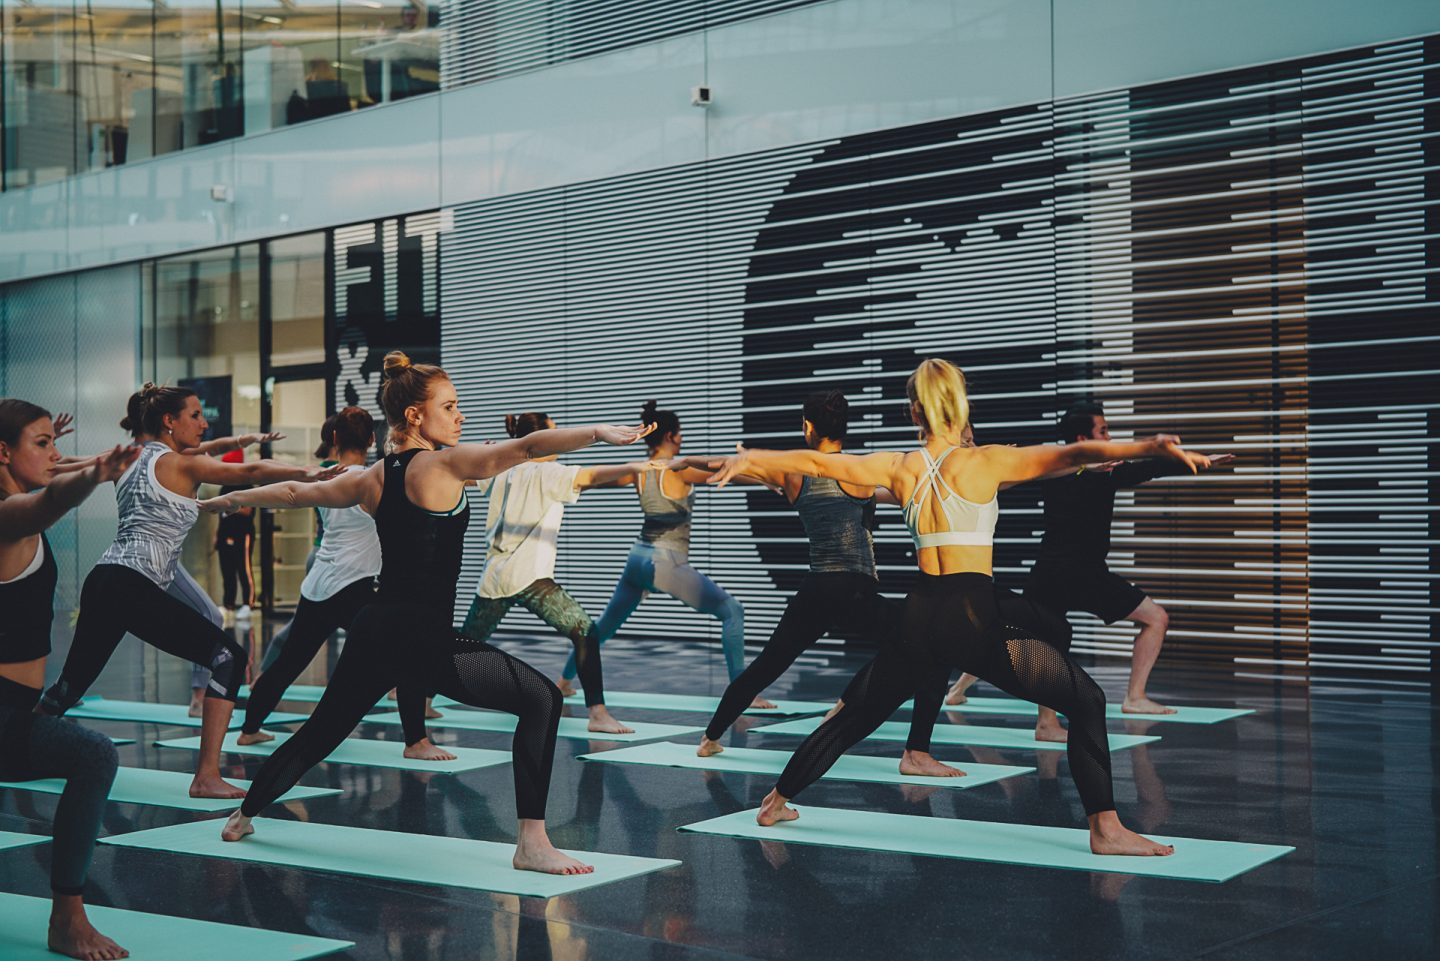 A group of yogis practicing yoga in an office building at adidas. employees, creativity, flow, yogi, leadership, GamePlan A, adidas HQ, Laces, warrior pose